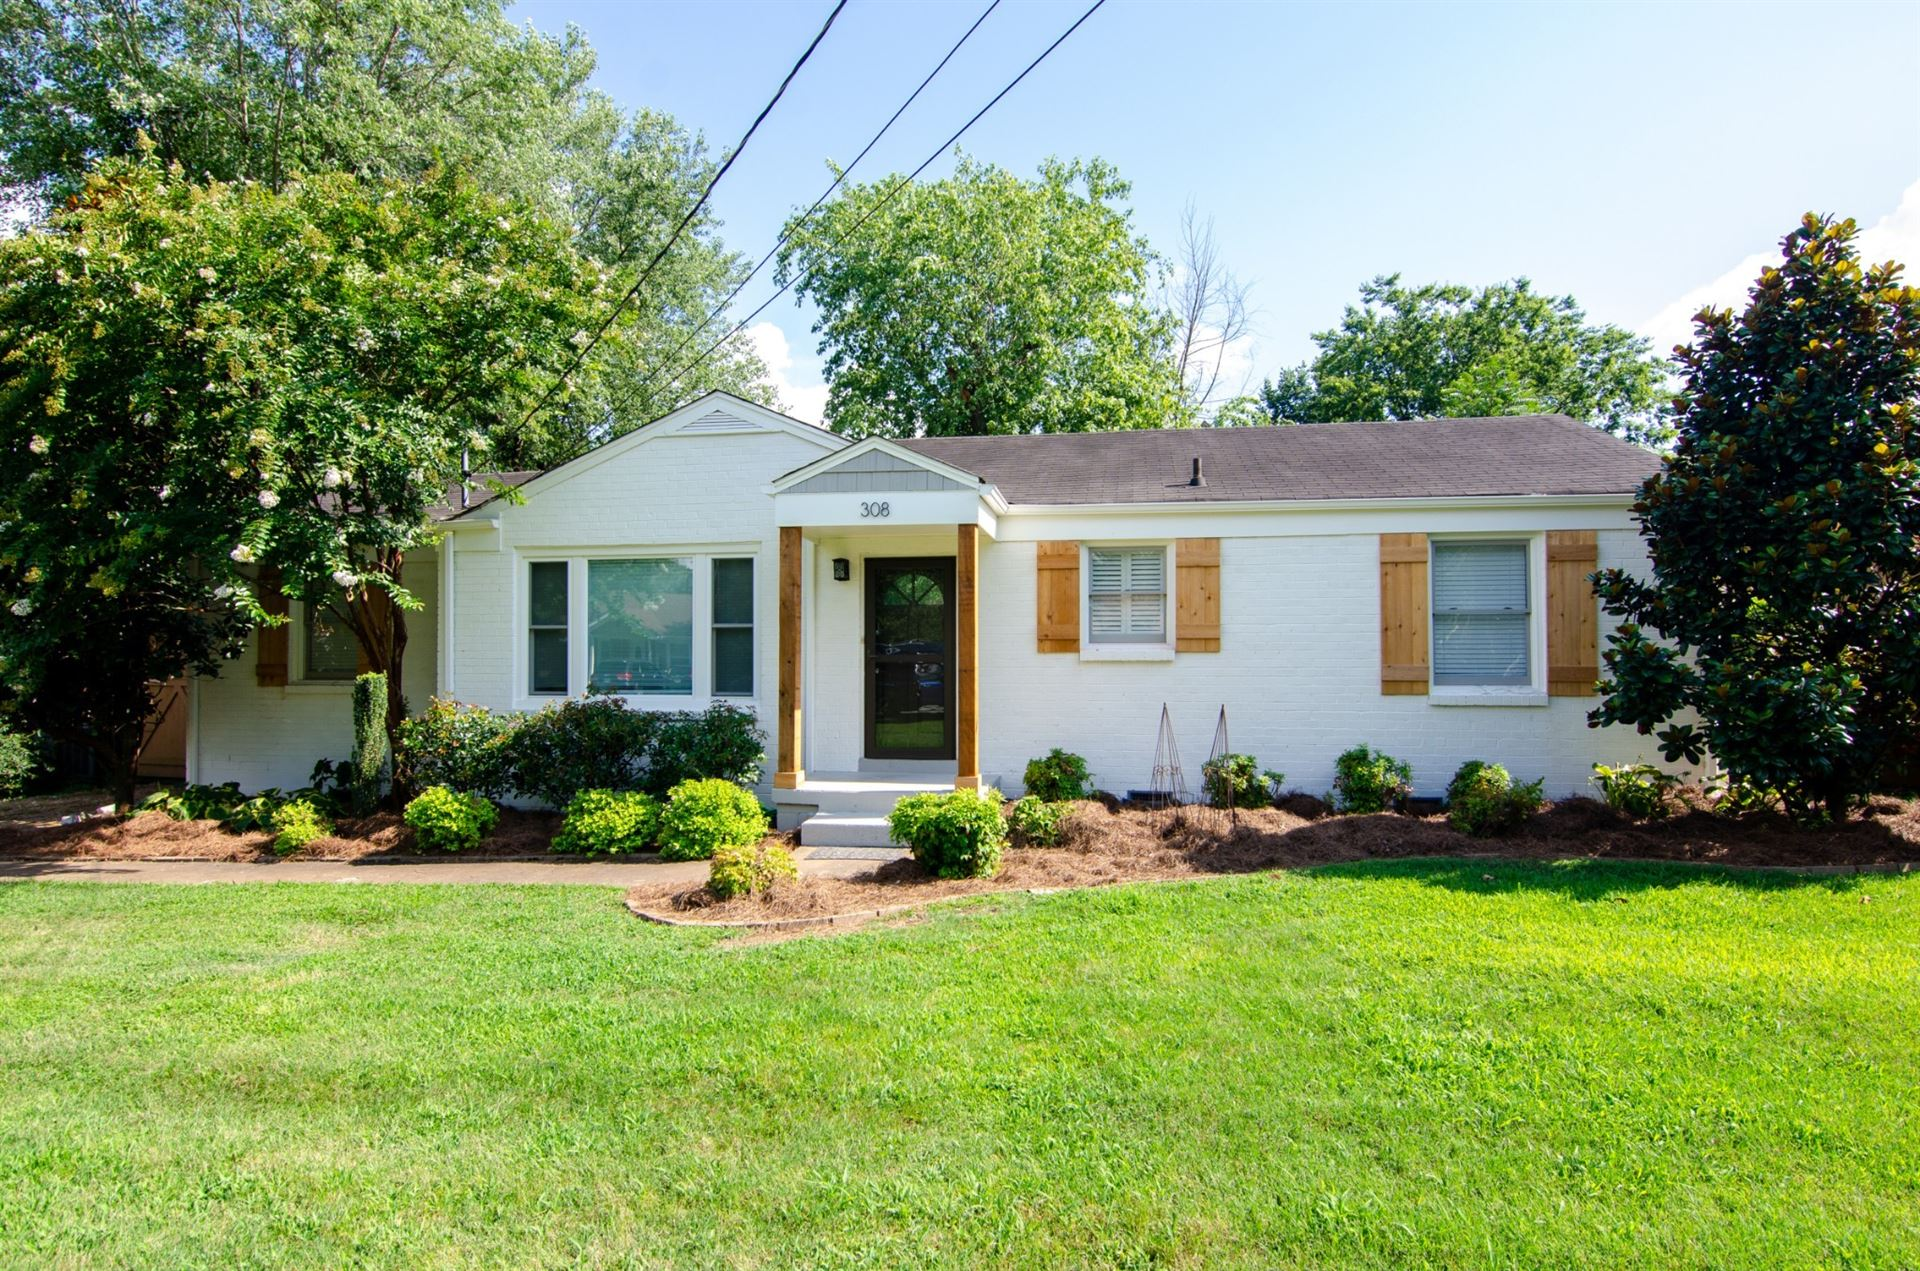 Photo of 308 James Ave, Franklin, TN 37064 (MLS # 2238974)